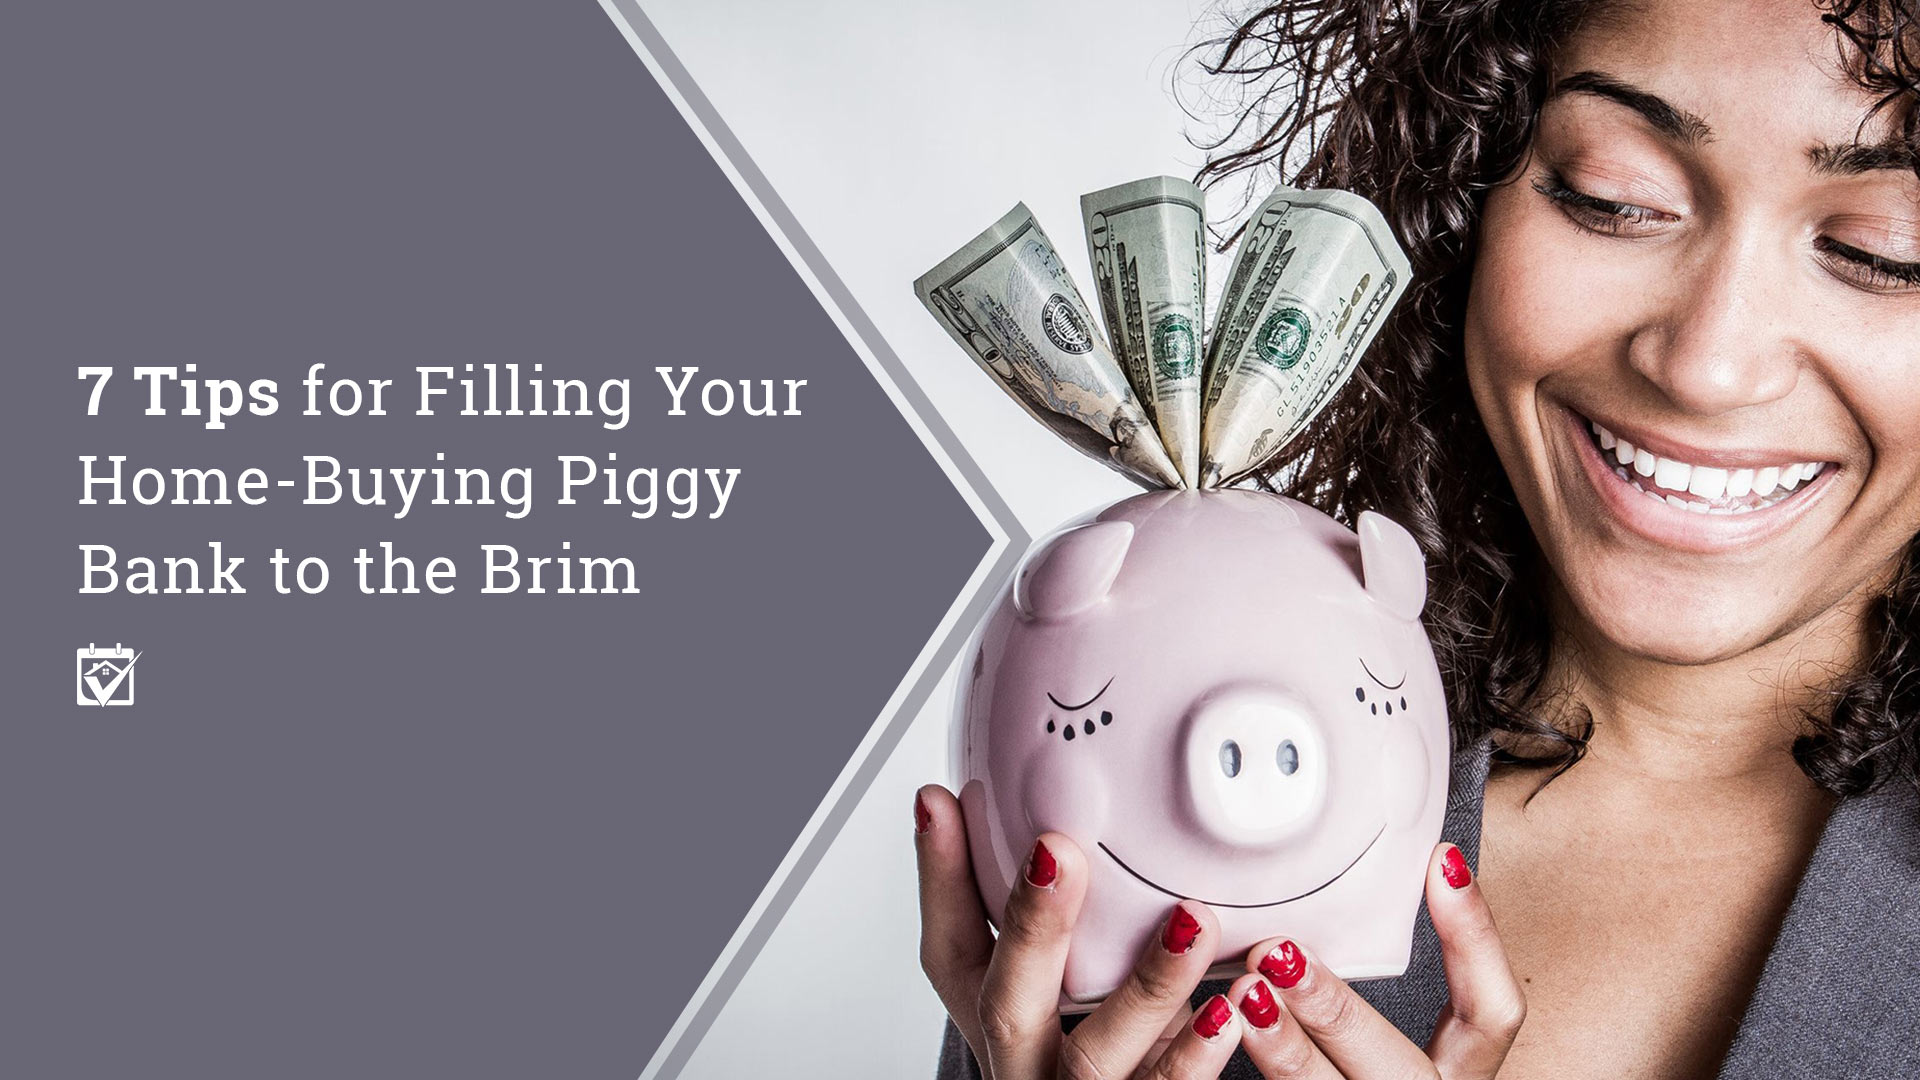 7 Tips for Filling Your Home-Buying Piggy Bank to the Brim